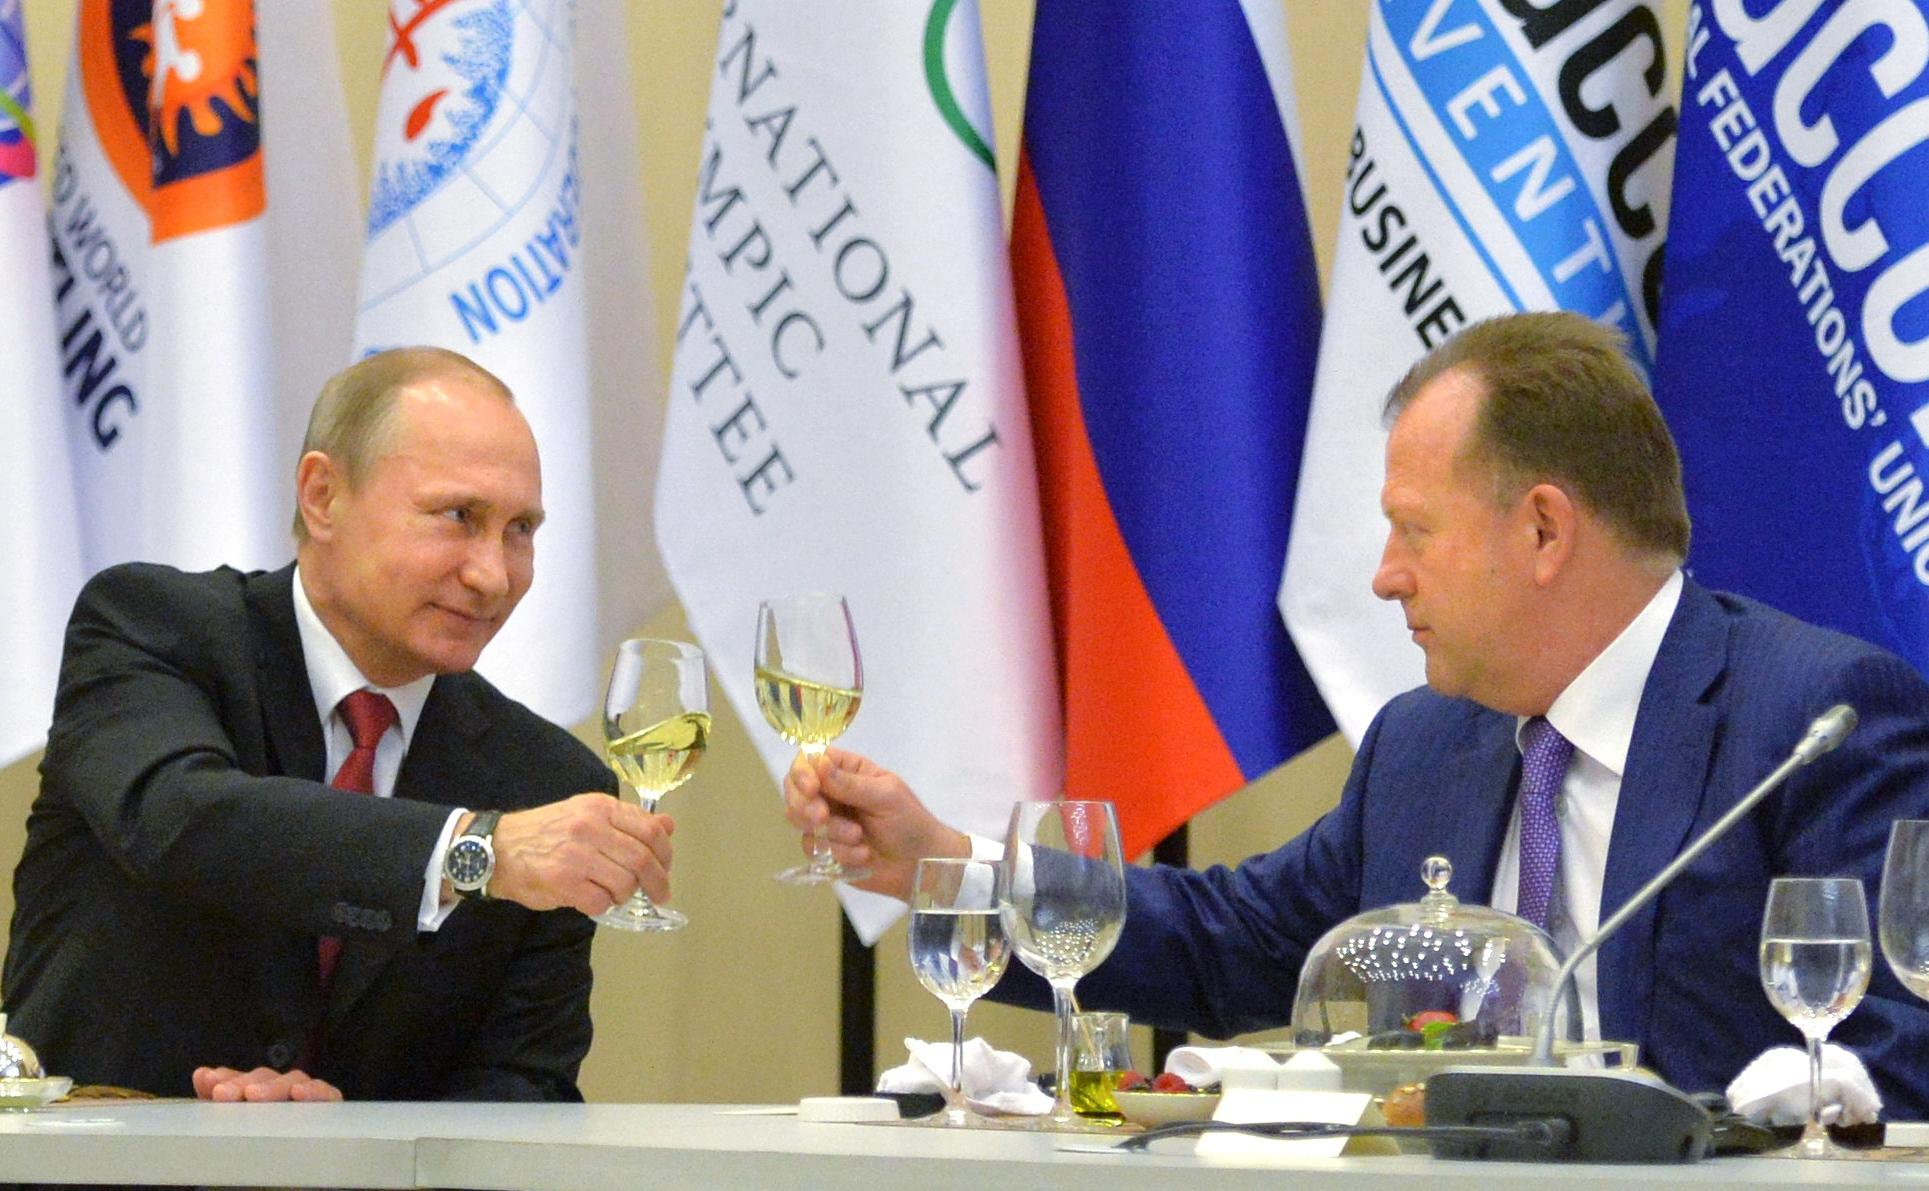 Ugly Olympic conflict breaks into open at Sochi conference